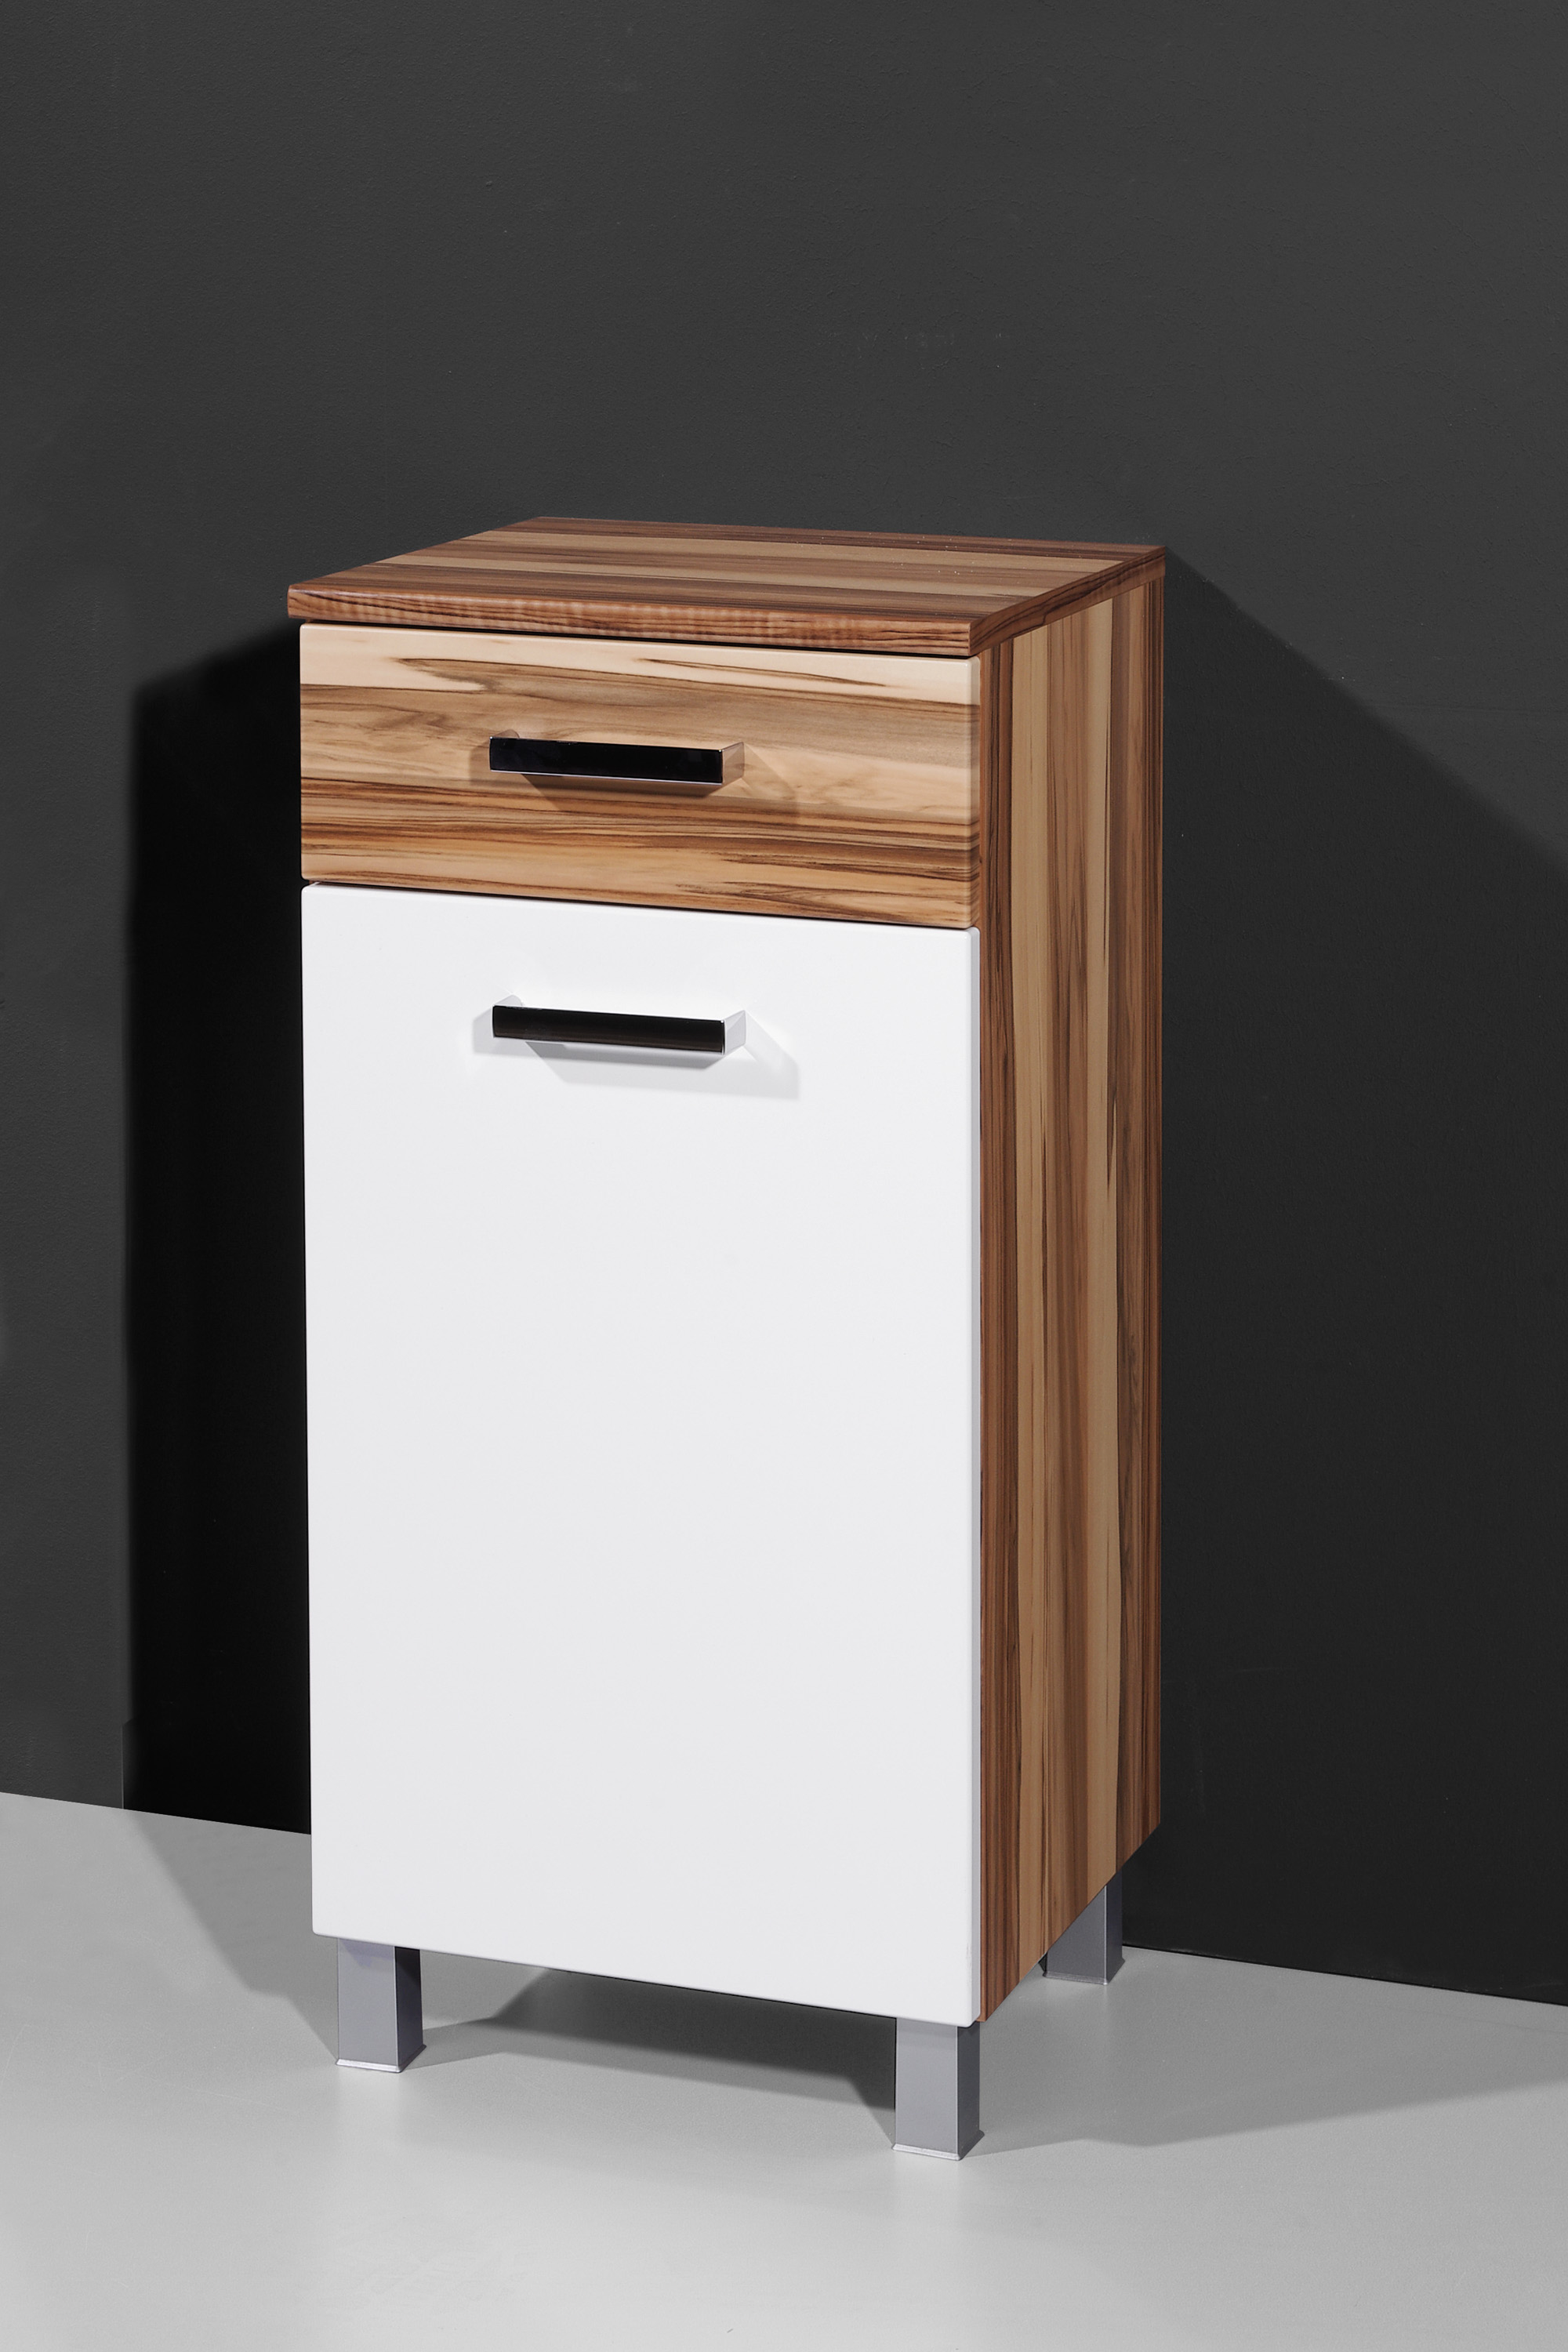 Baltimore Walnuss Kommode Badkommode Badmöbel Kommode Seitenschrank B082 3 Baltimore